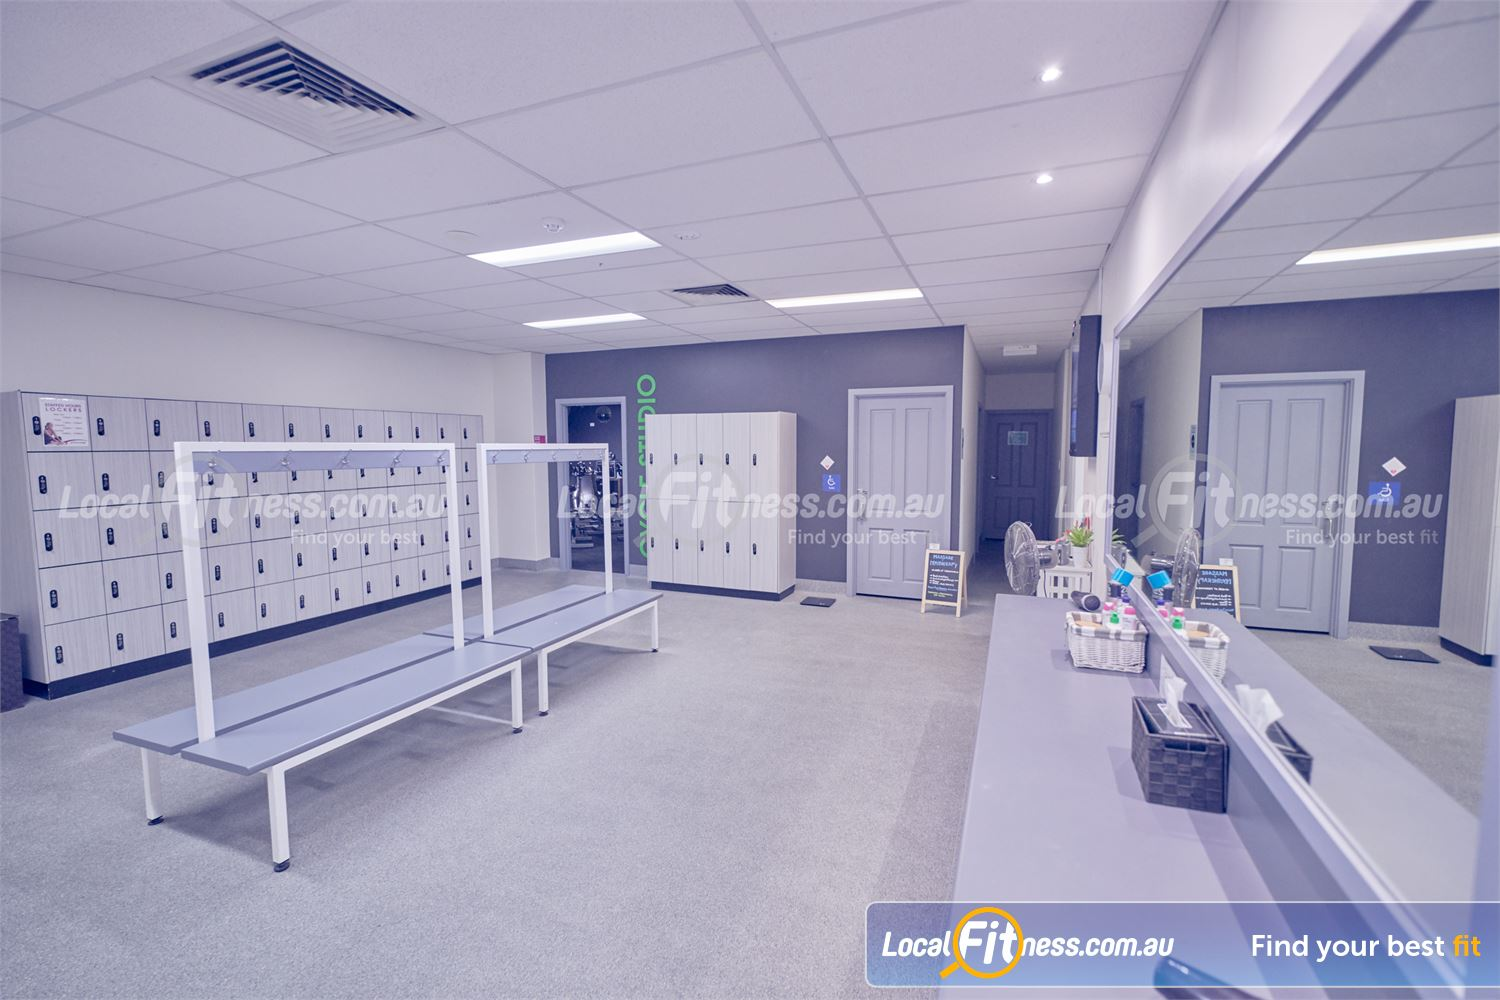 Fernwood Fitness St Kilda Beautifully appointed change room facilities.